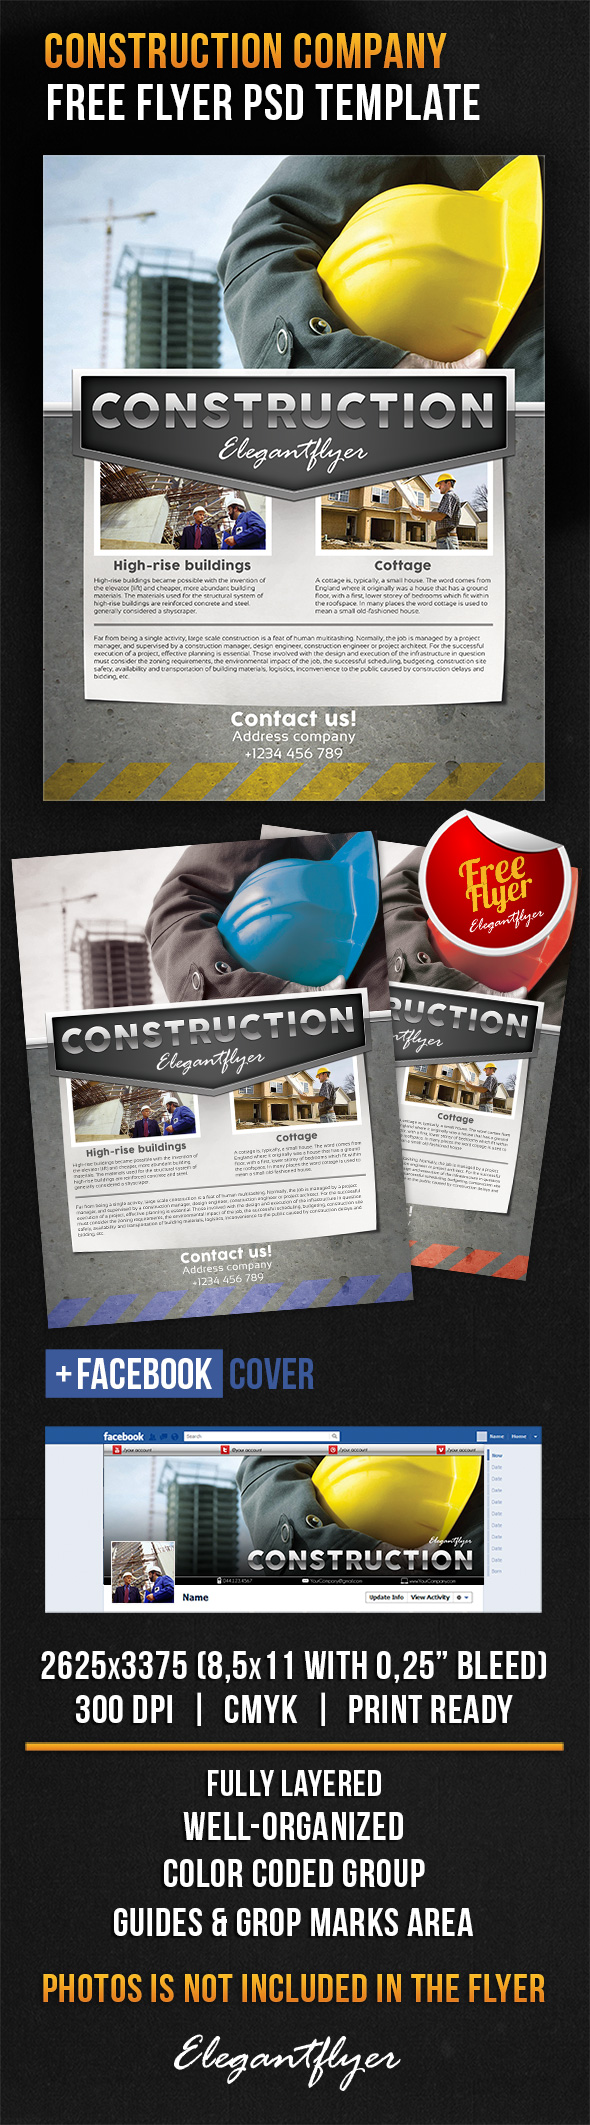 construction company free flyer psd template facebook cover httpswww